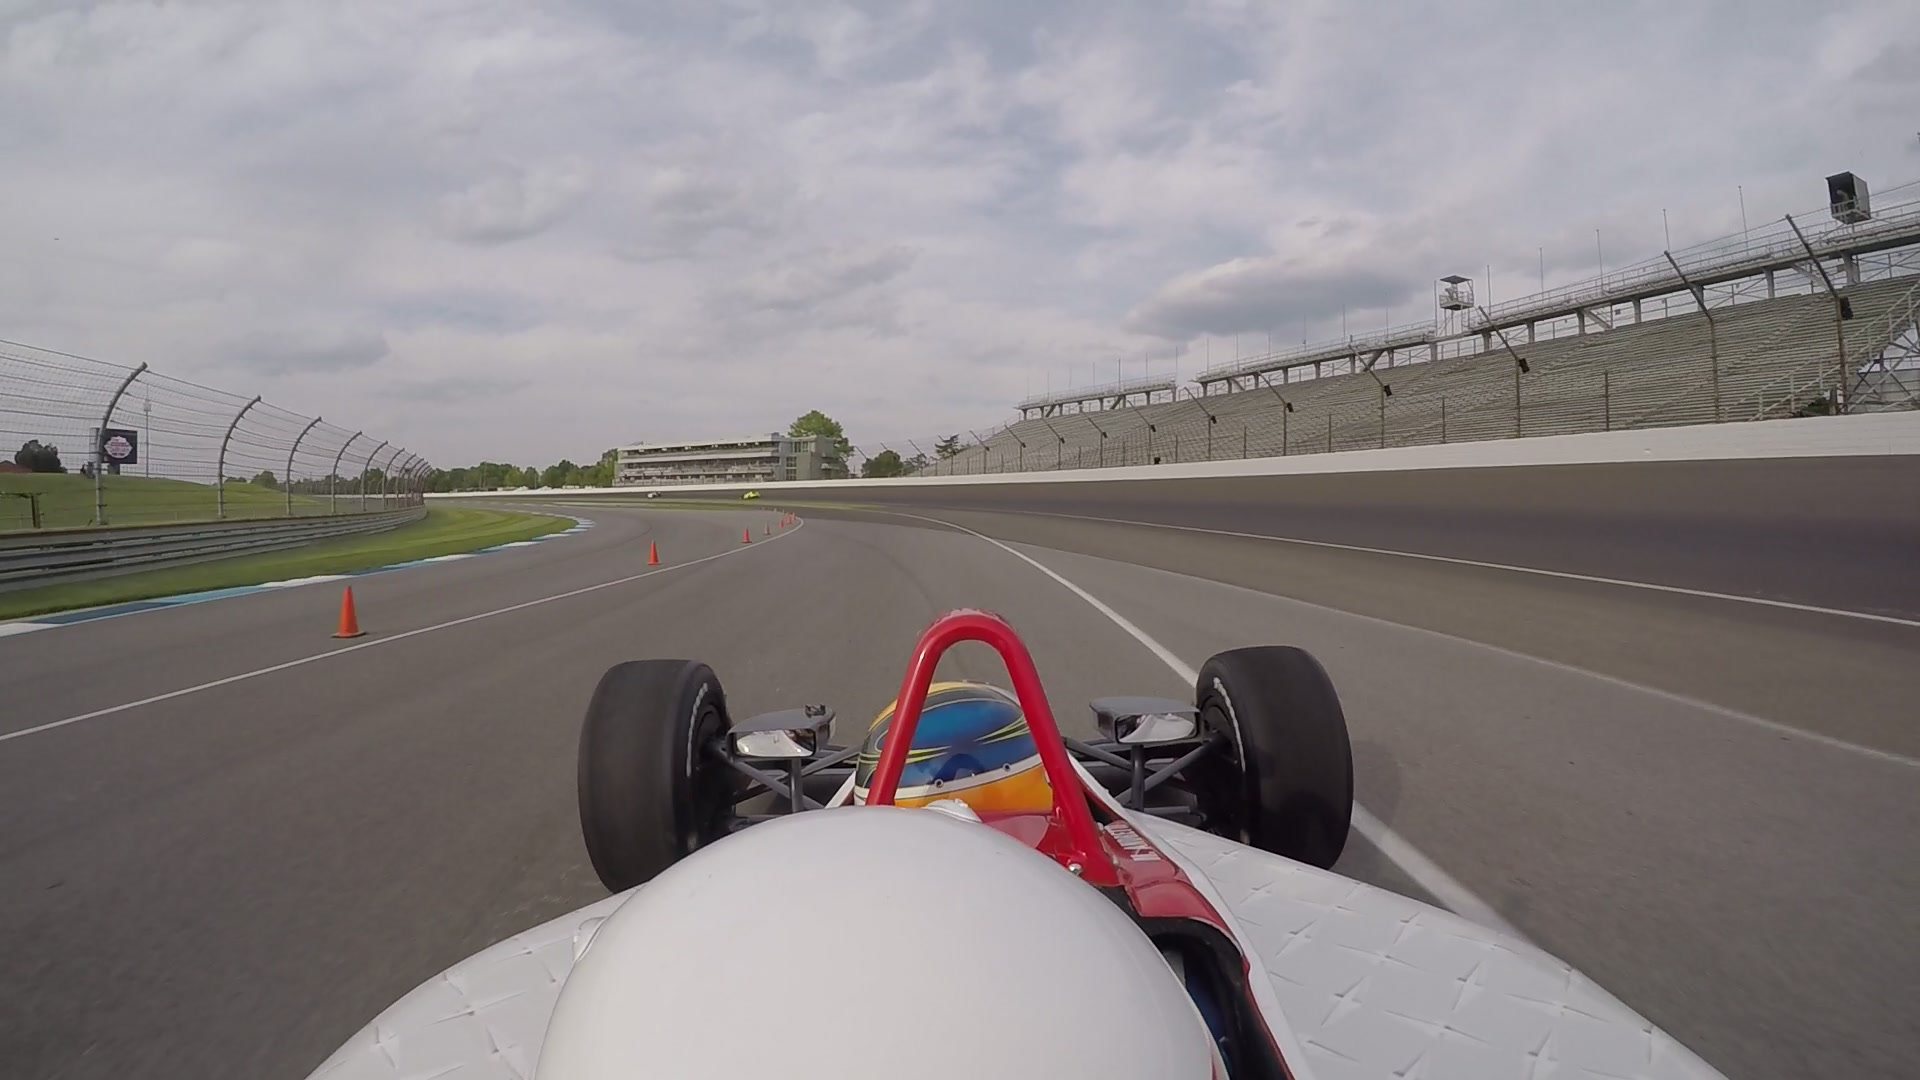 Honda Indy Two-Seater at Indianapolis Motor Speedway | Autoblog Short Cuts